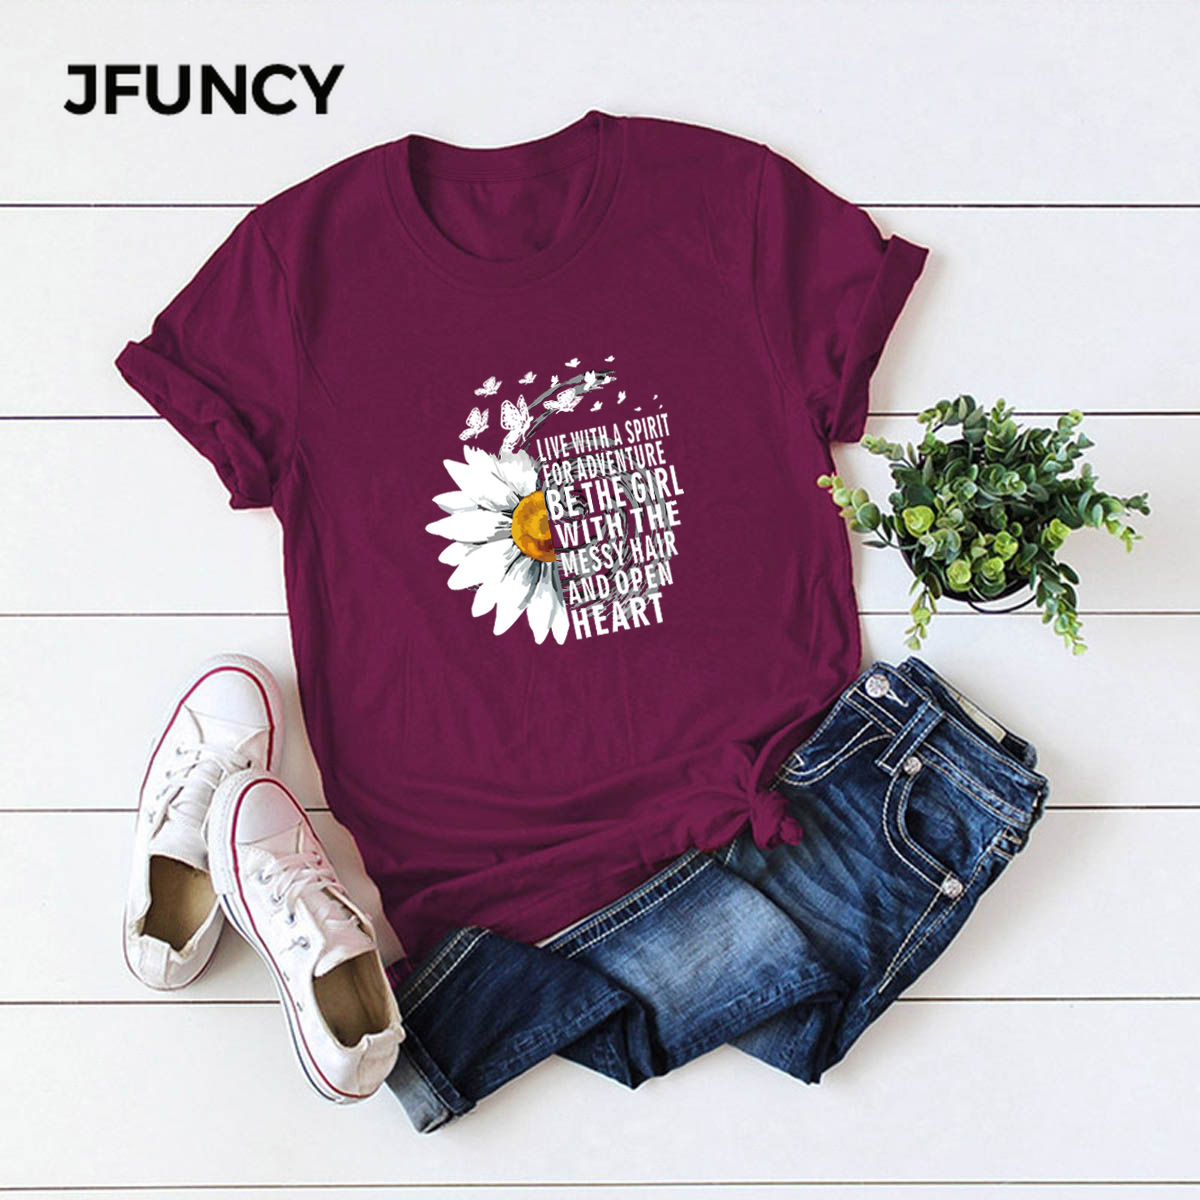 JFUNCY 2020 New Summer Cotton Women T-shirts Creative Chrysanthemum Inspirational Letter Print T Shirt Plus Size Mujer Tee Tops